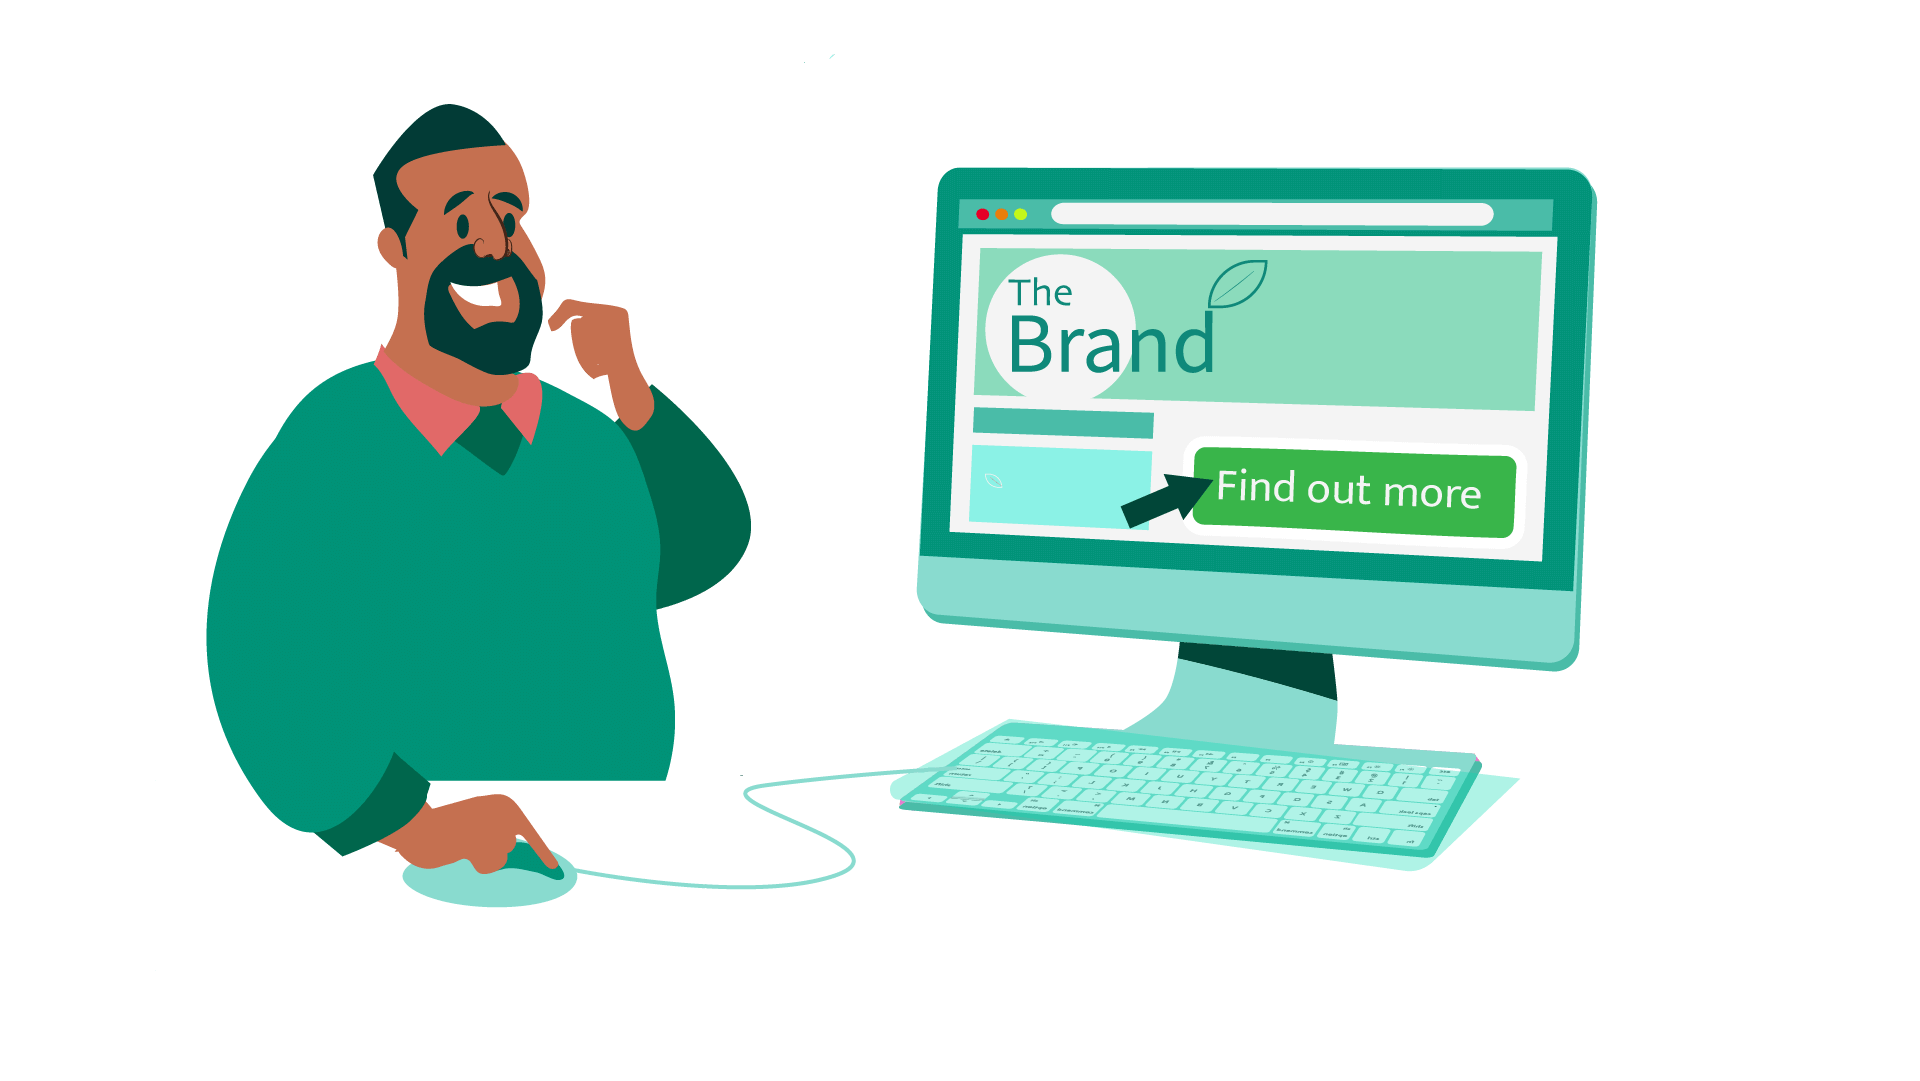 Brand solutions